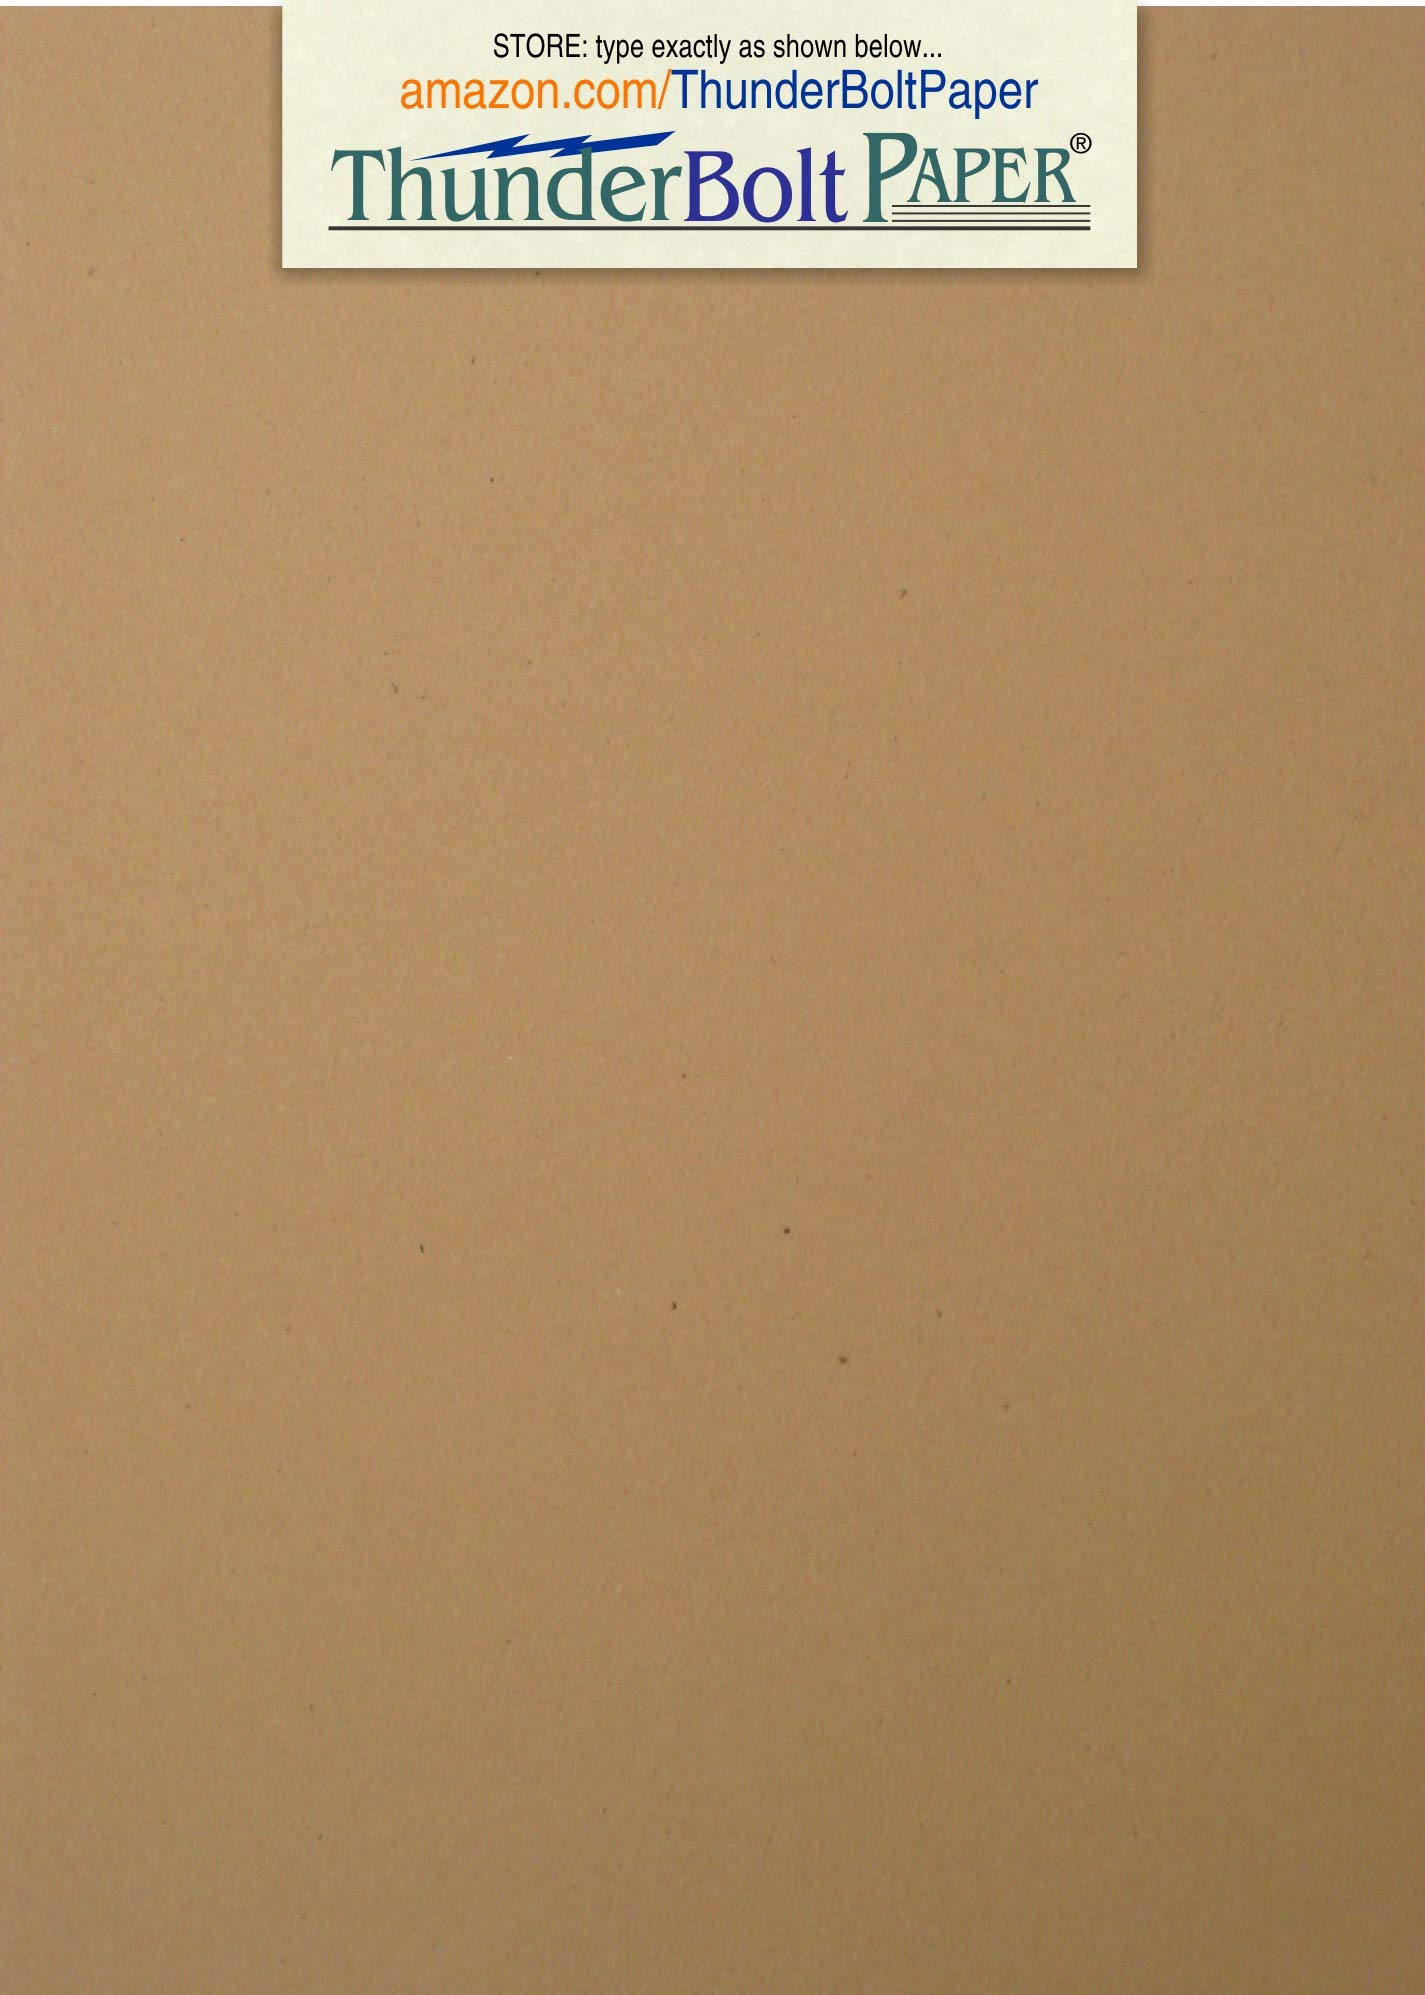 350 Brown Kraft Fiber 80# Cover Paper Sheets - 5'' X 7'' (5X7 Inches) Photo|Card|Frame Size - Rich Earthy Color with Natural Fibers - 80lb/Pound Cardstock - Smooth Finish